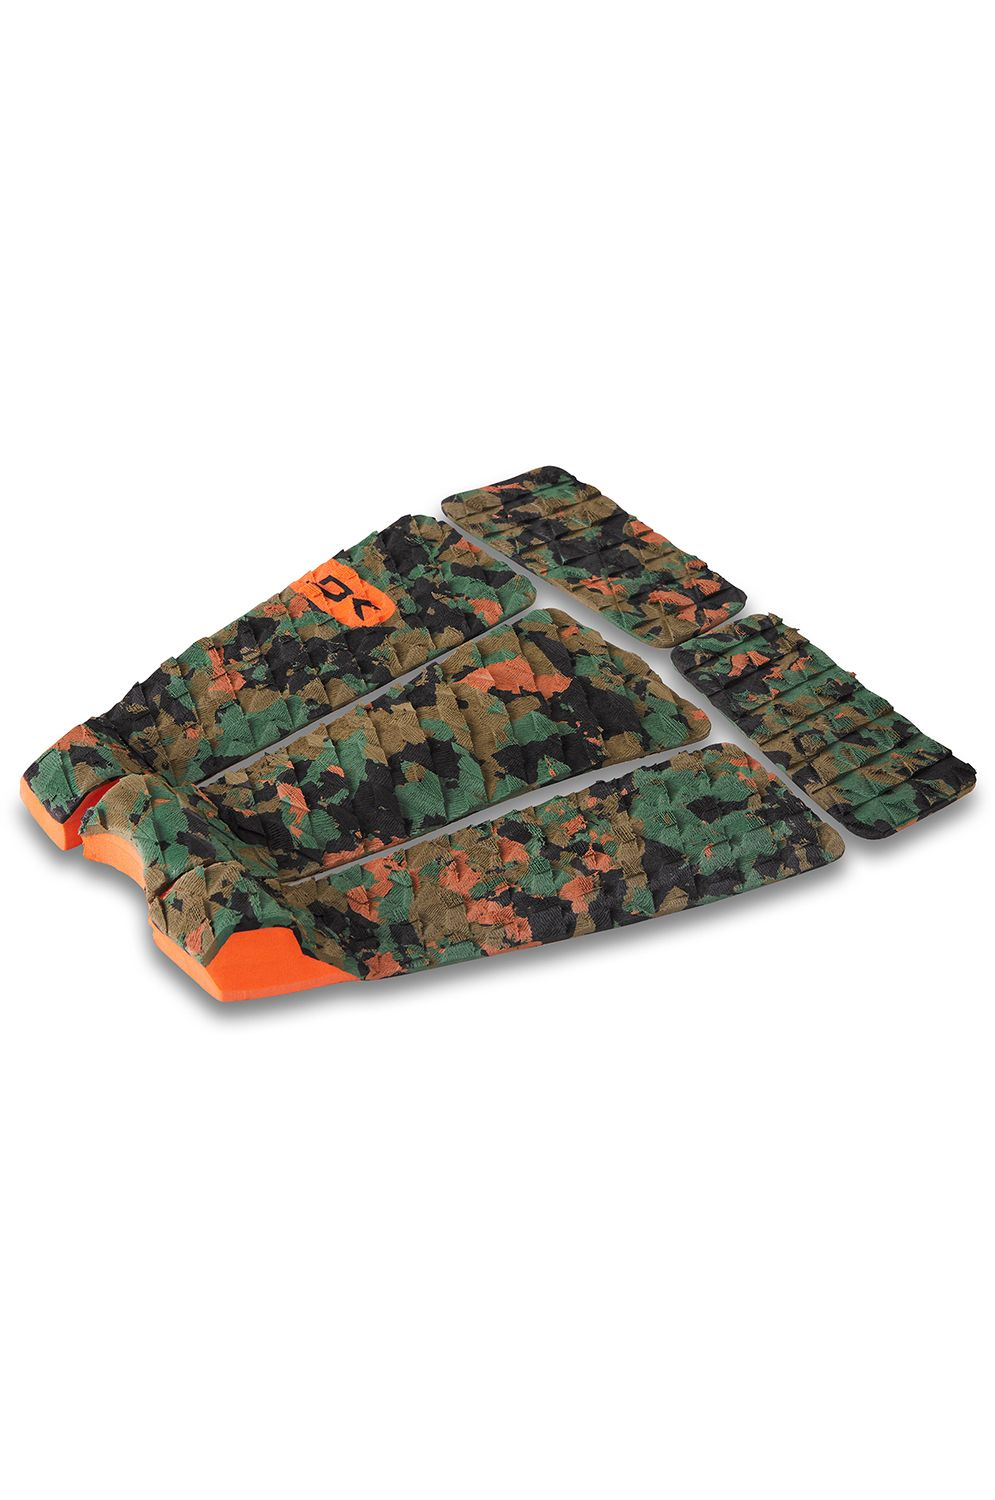 Deck Dakine BRUCE IRONS PRO SURF TRACTION PAD Olive Camo